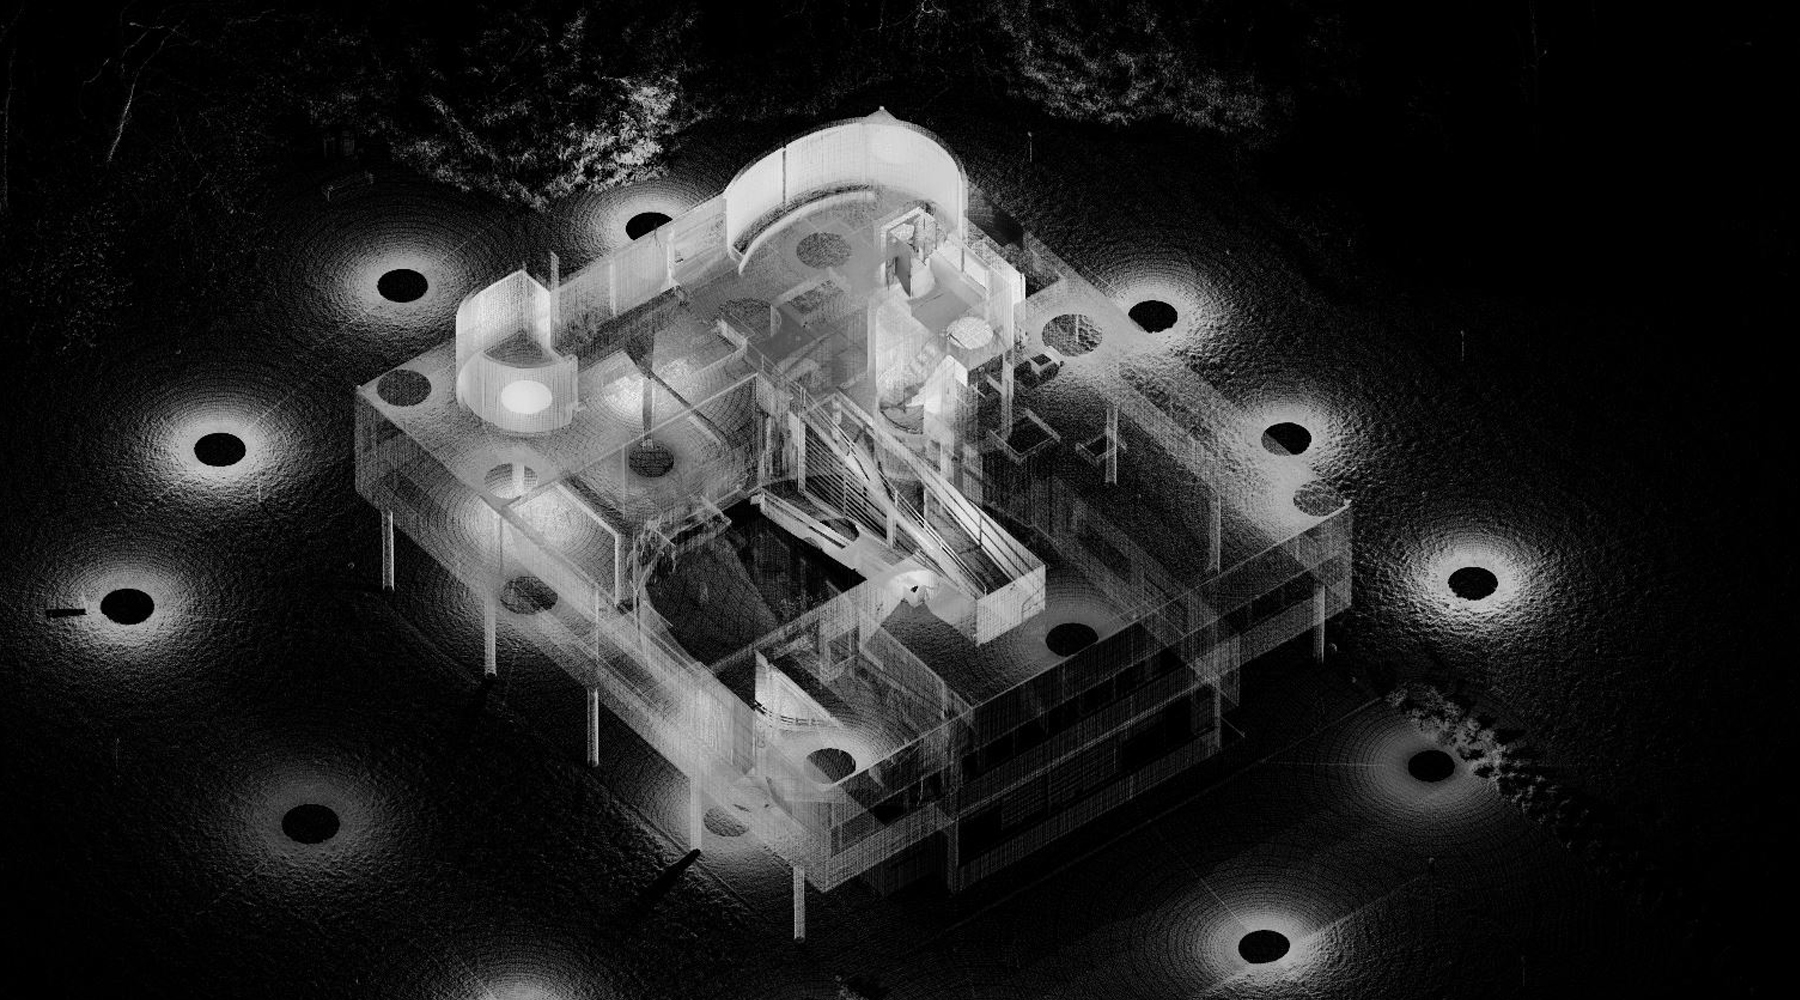 12 Villa Savoye, Poissy - Point cloud